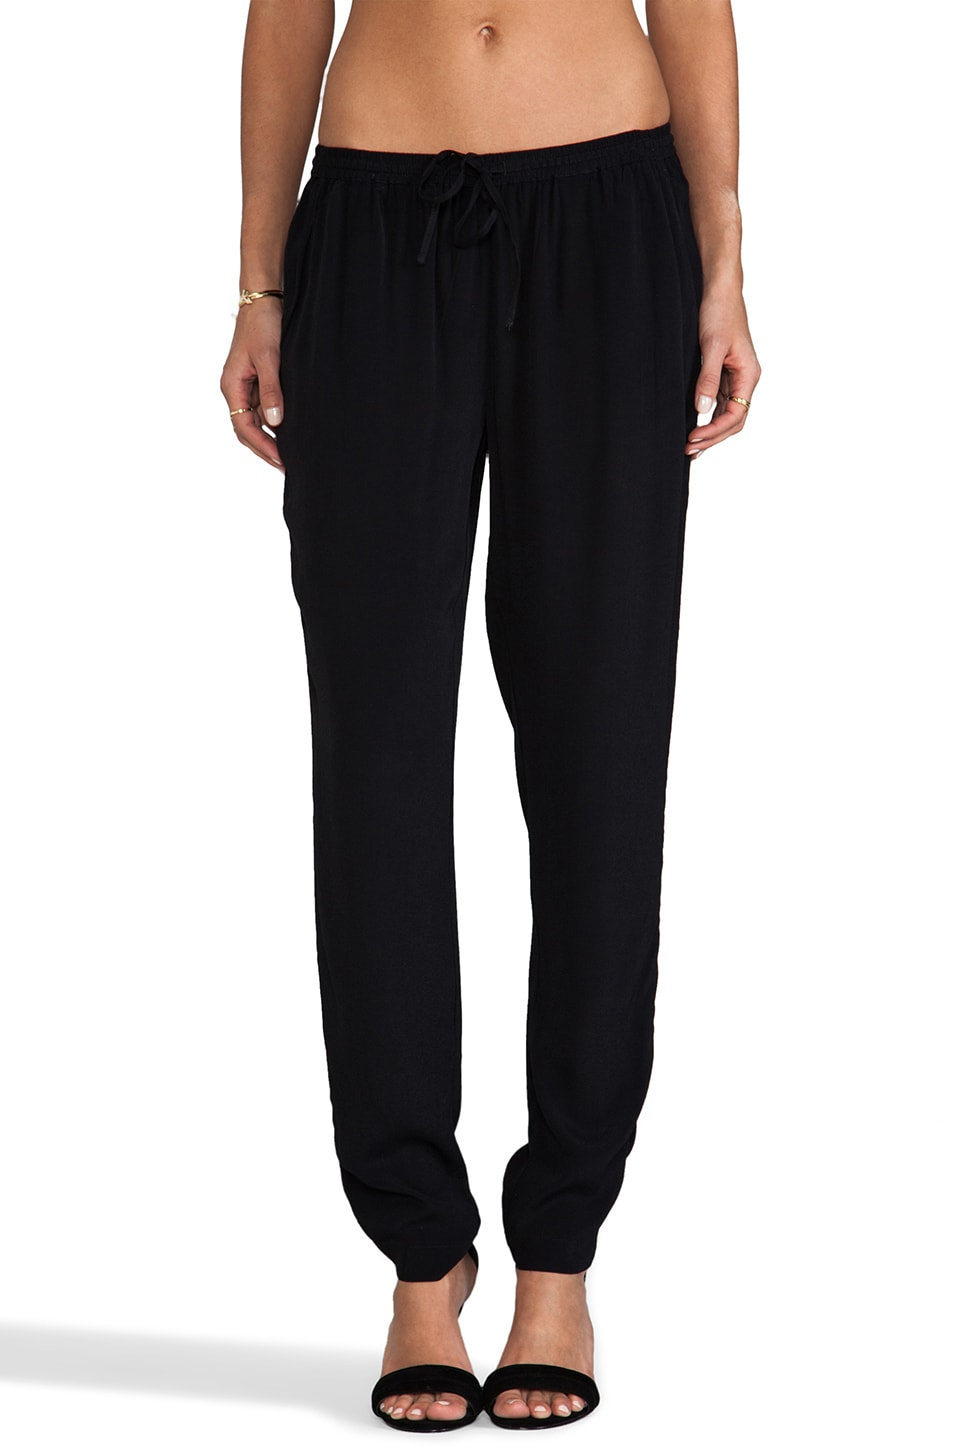 Soft Joie Kyla Pant in Caviar